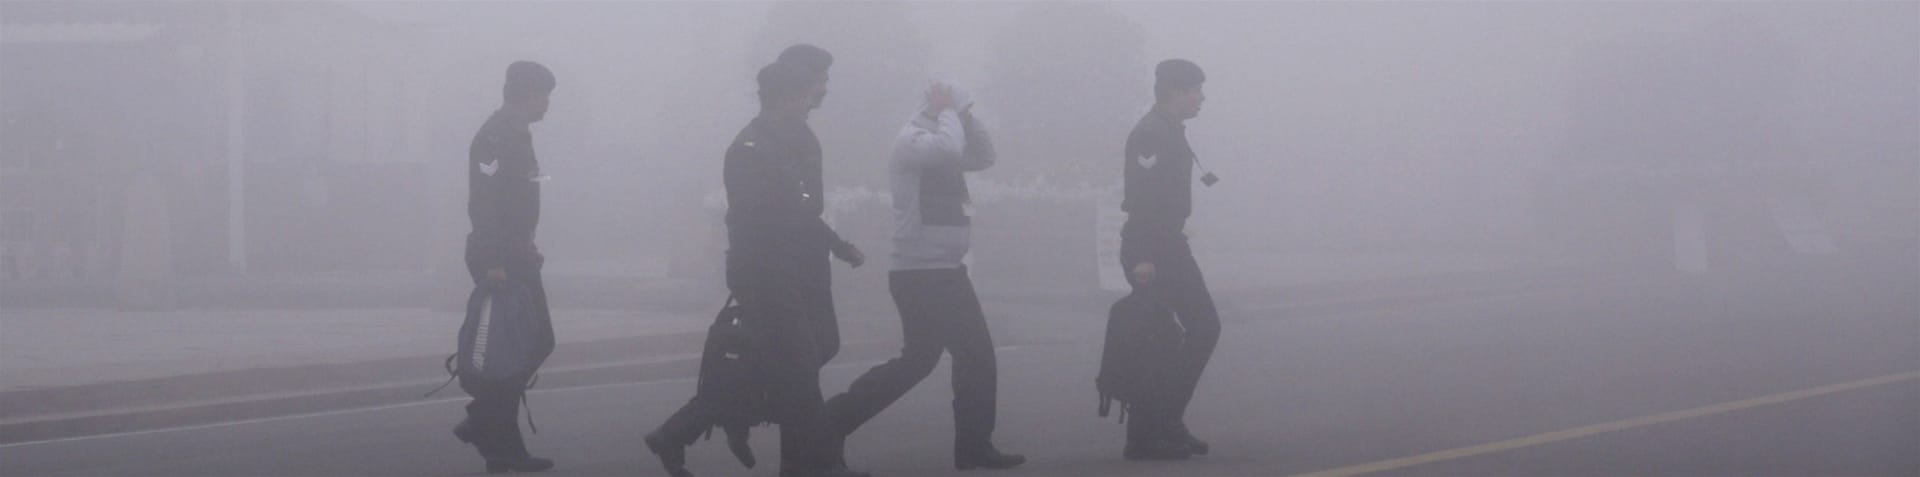 Visibility has been well below 500 metres across a good part of Punjab state and Uttar Pradesh  [AFP]